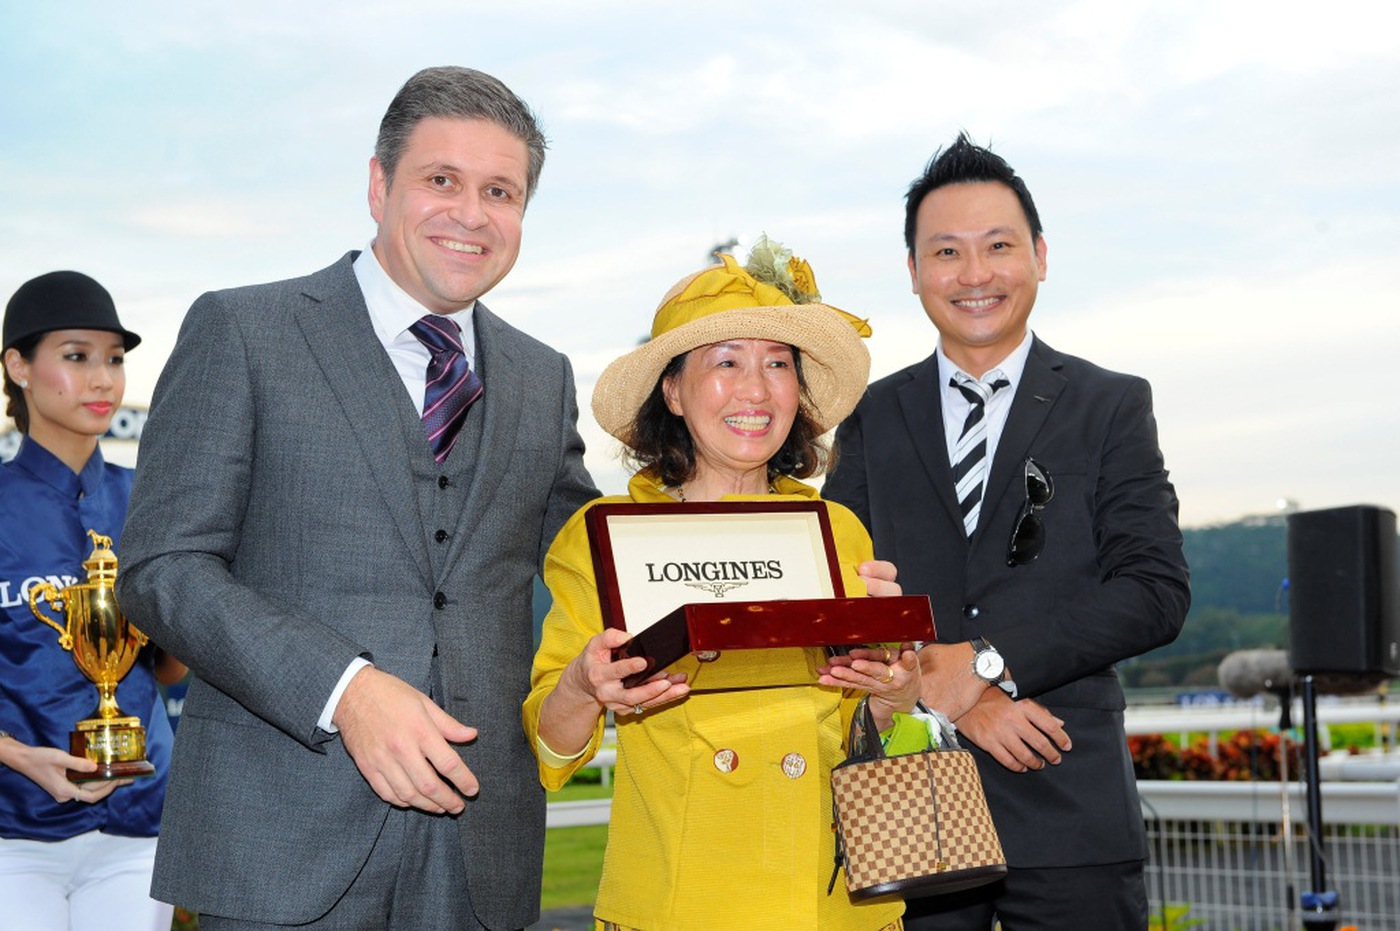 Longines Flat Racing Event: Longines Singapore Gold Cup 2012 raises S$236,728 14